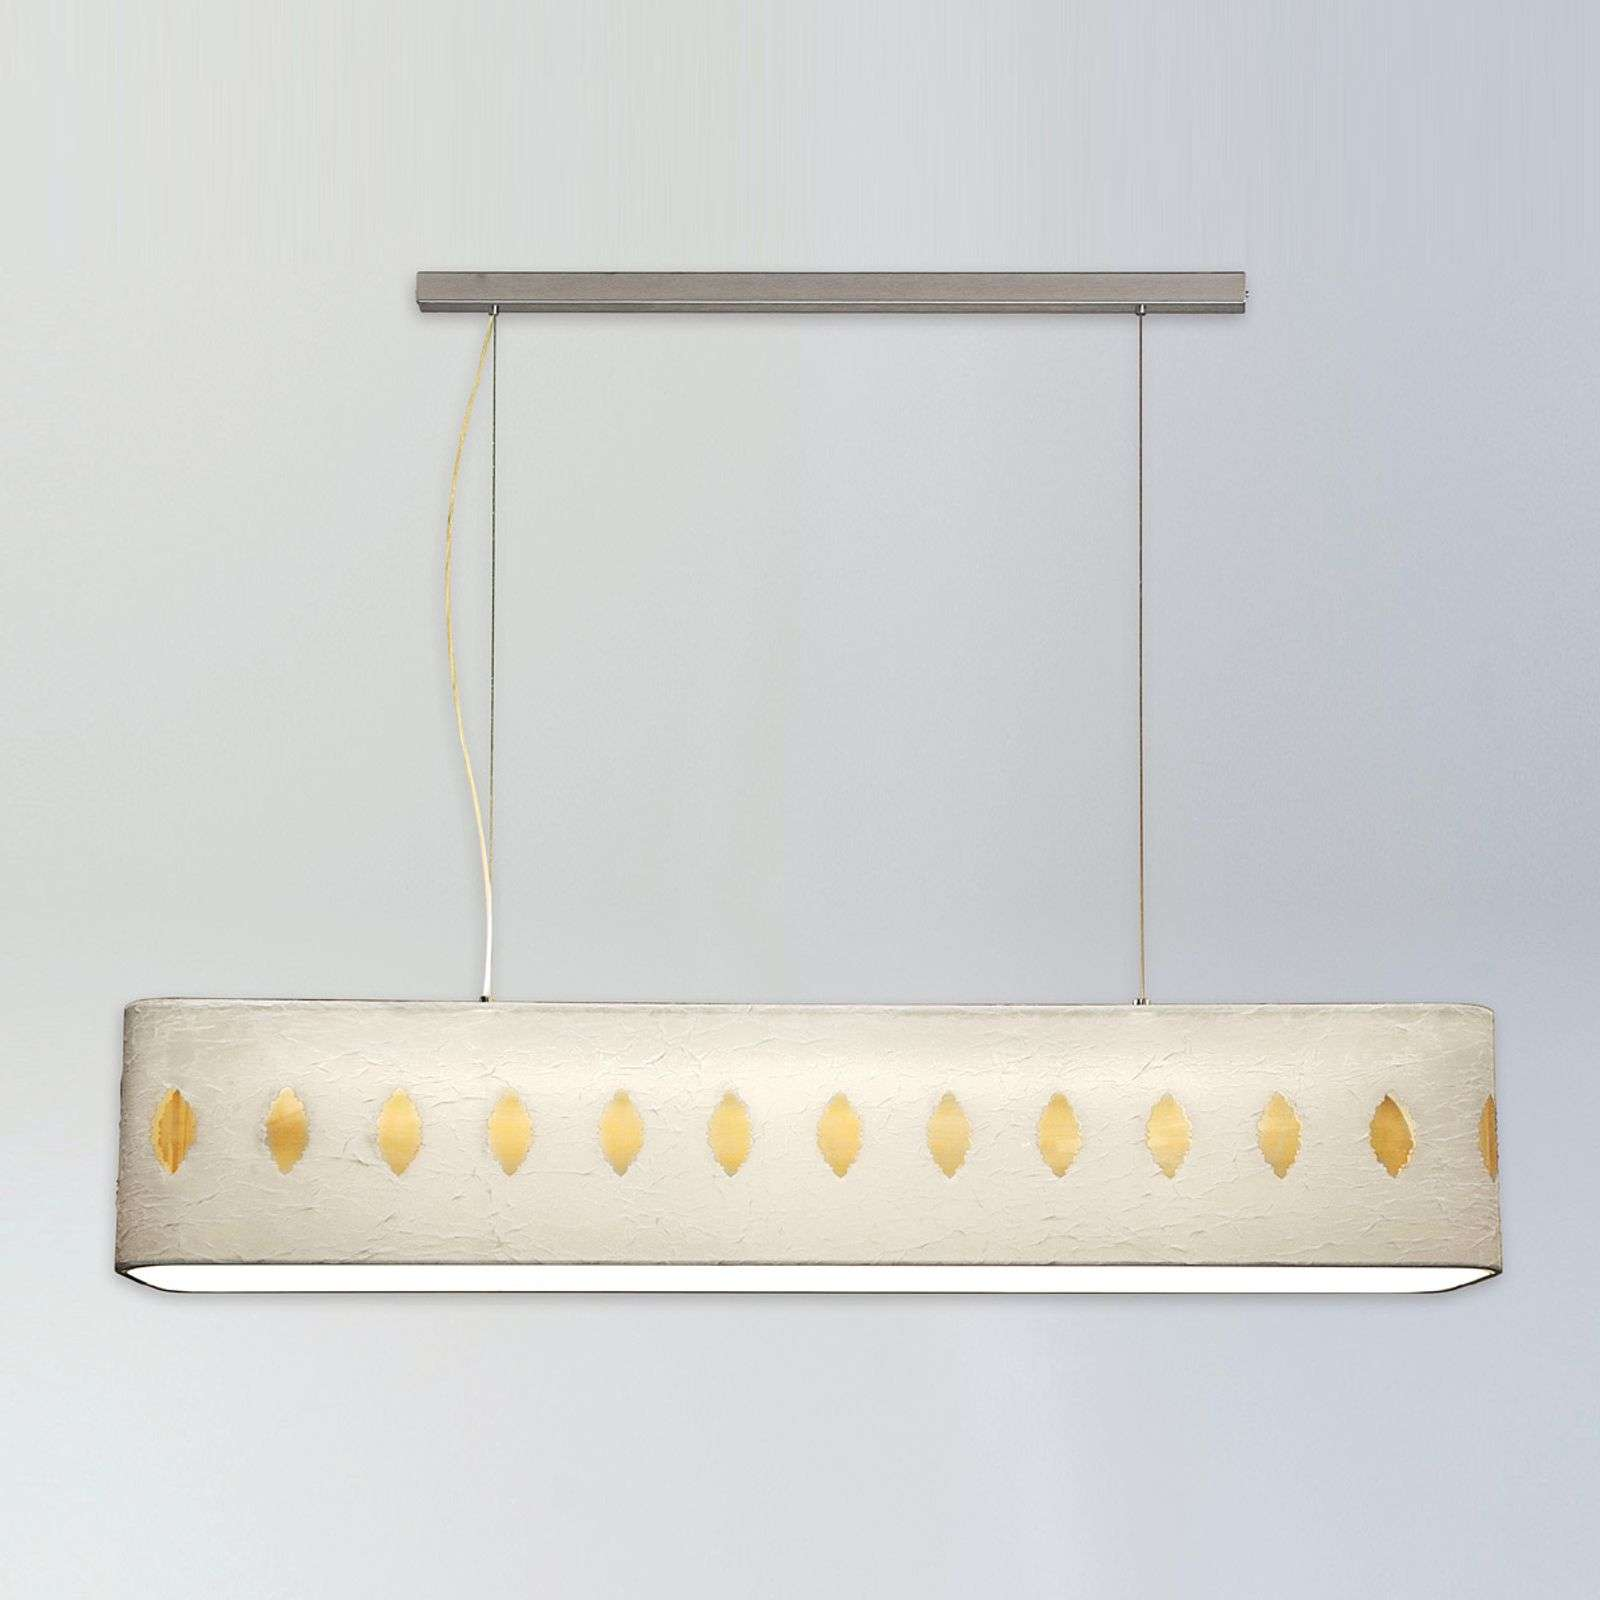 Suspension décorative Lavina 130 cm blanc